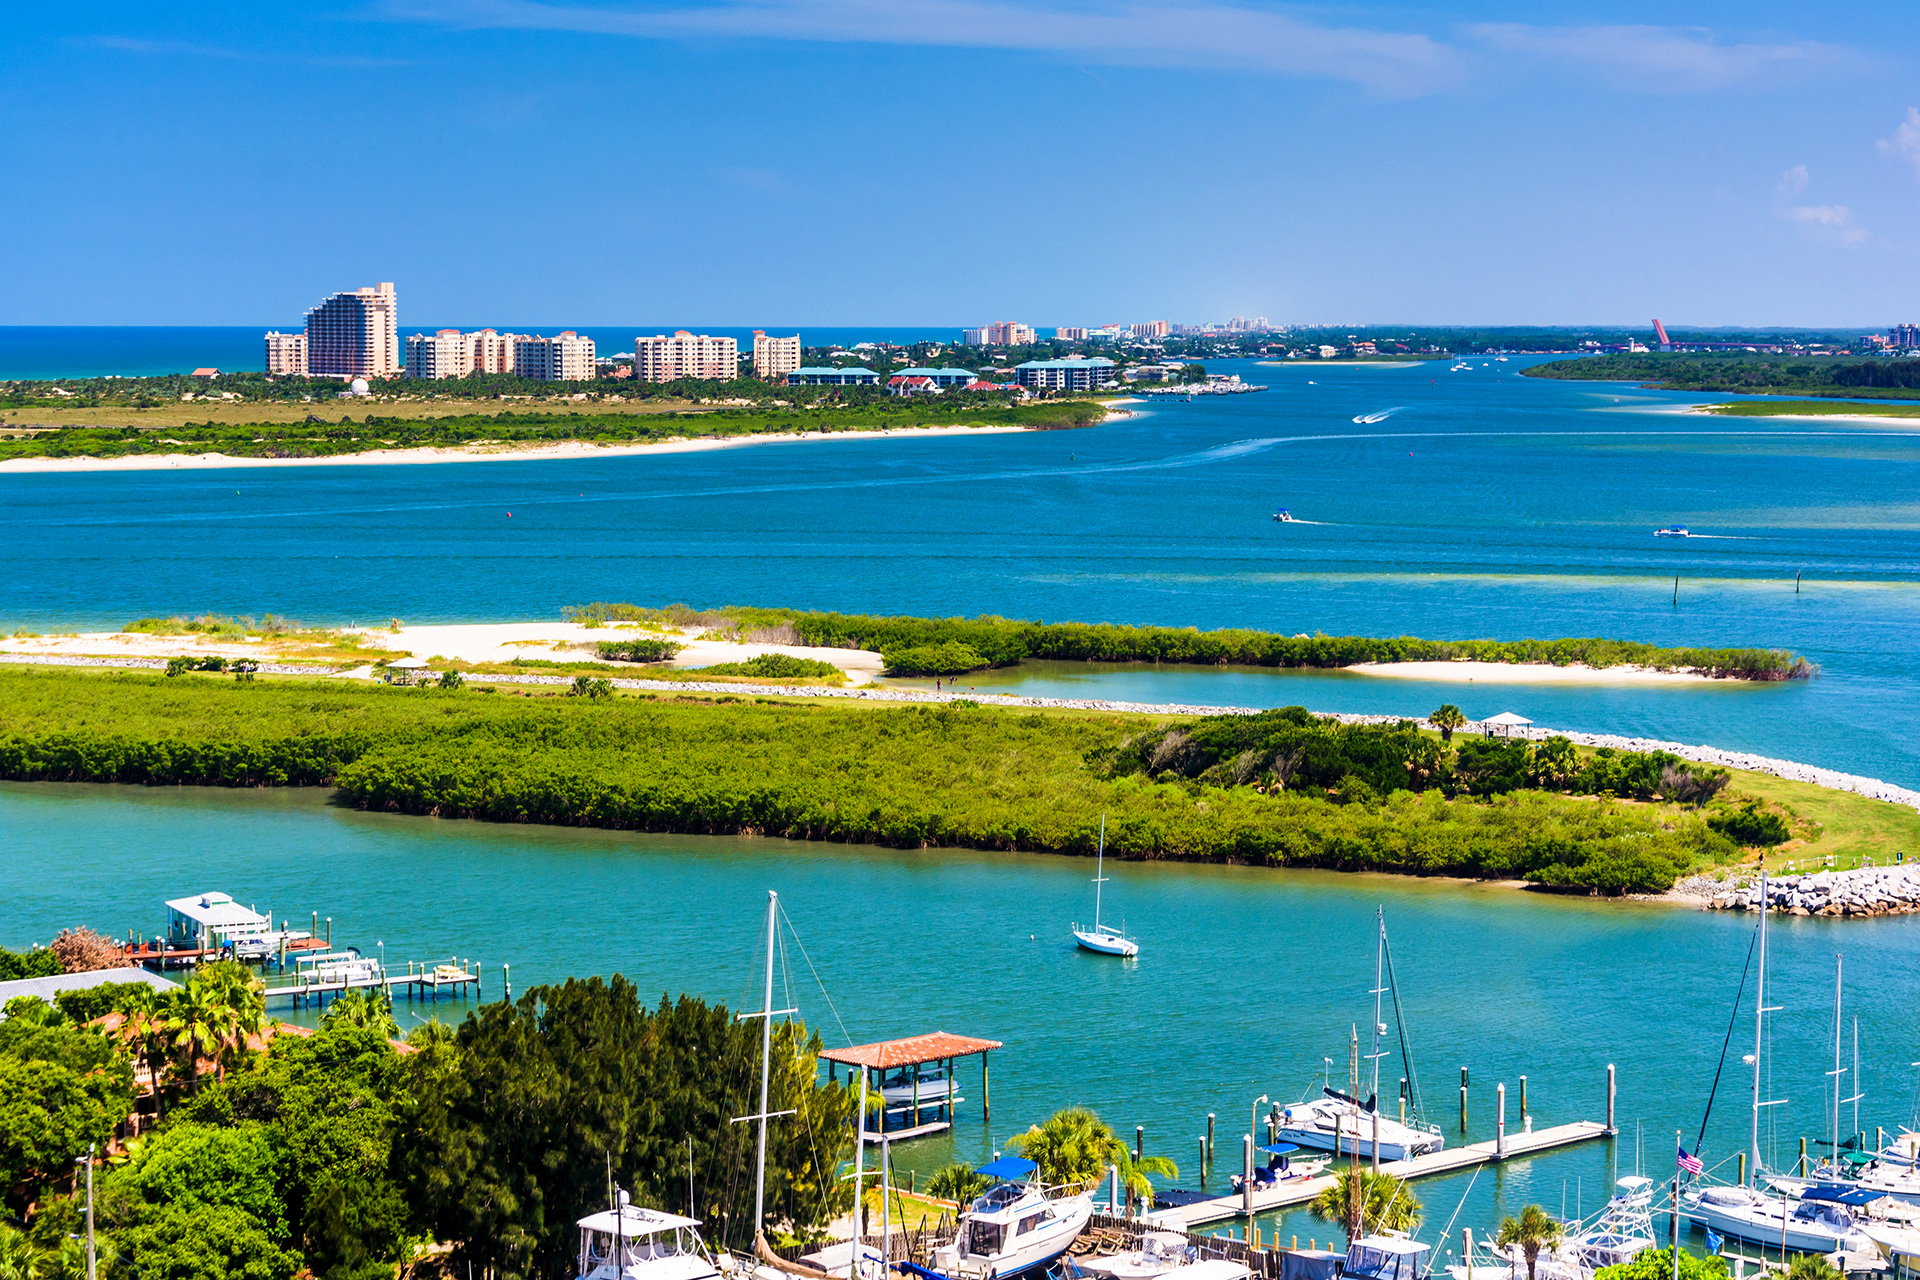 View of Ponce Inlet and New Smyrna Beach from Ponce de Leon Inlet Lighthouse